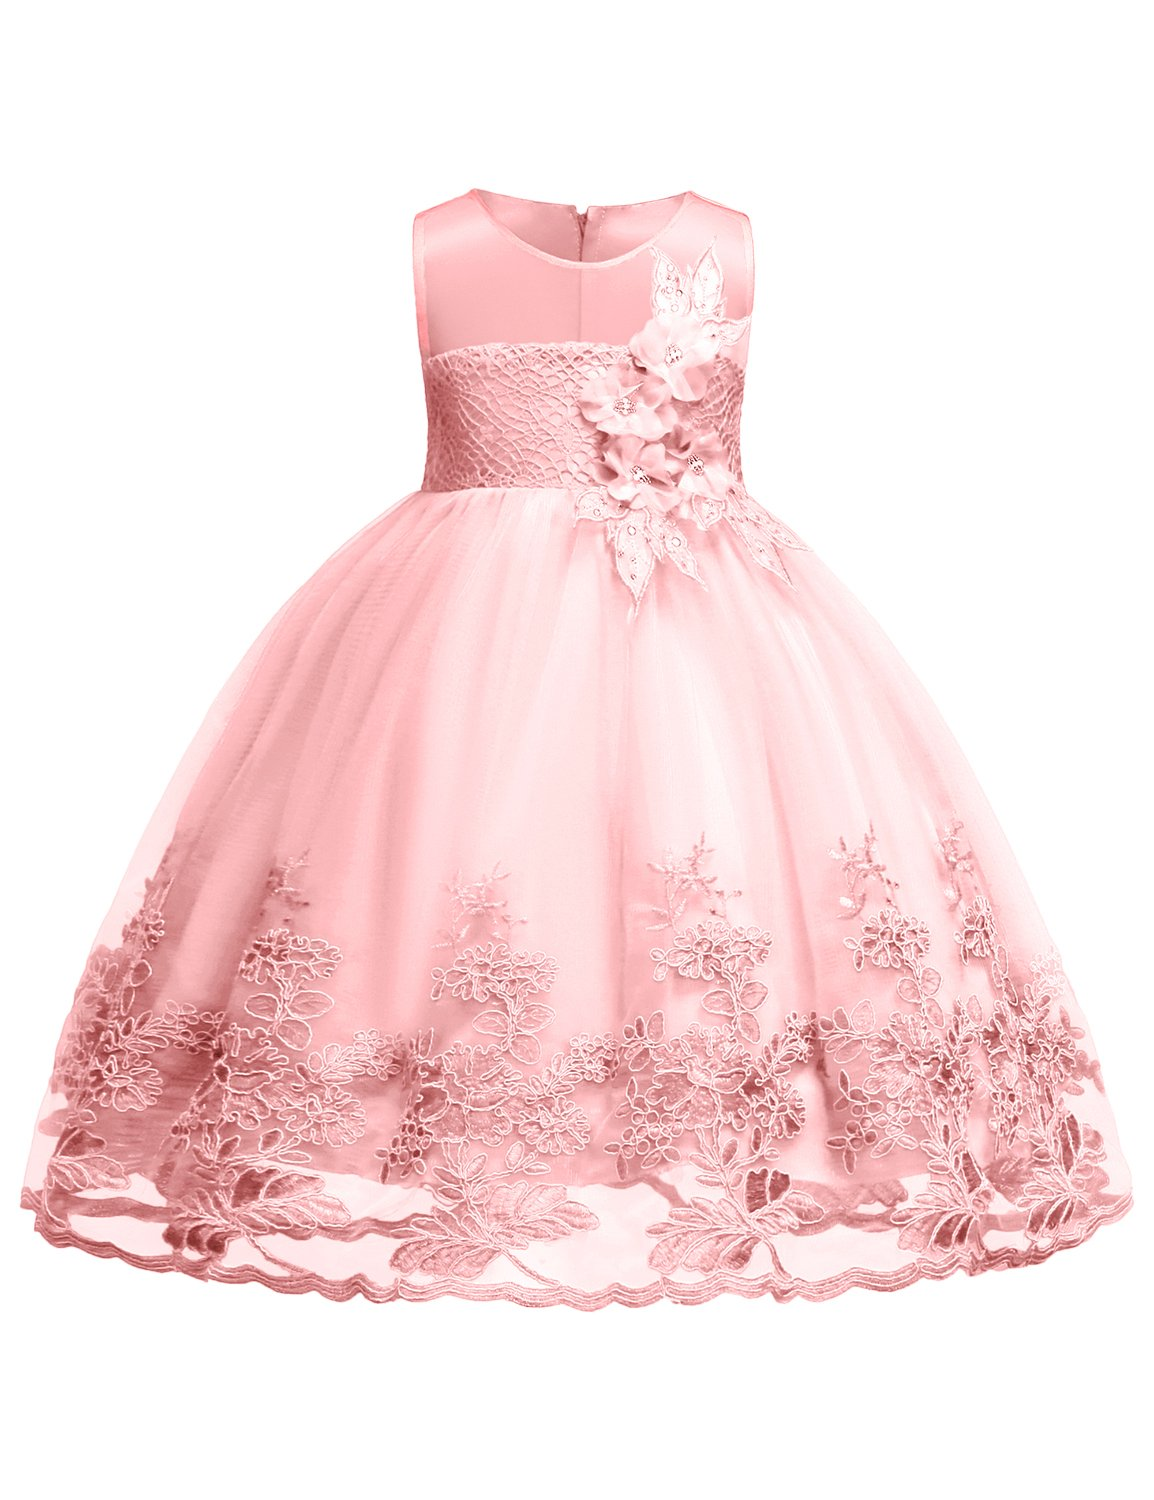 Blevonh Party Dresses for Girls Toddlers Princess Pageant Elegant Tulle Dresses Little Girls Birthday Ball Gown A Line Dresses Size (120) 5-6 Years Pink Dresses